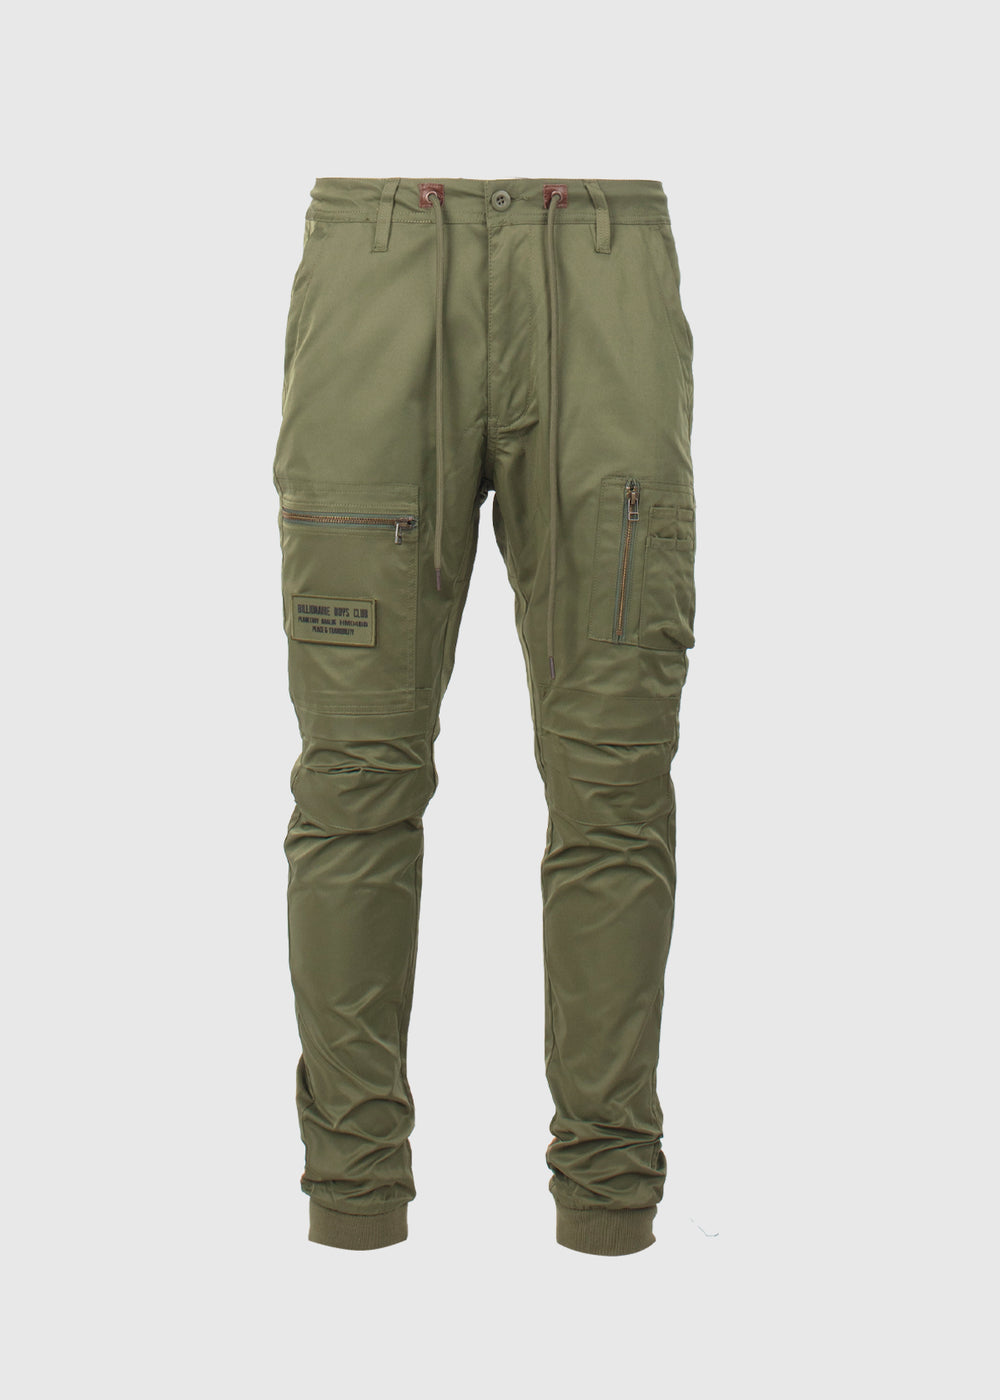 billionaire-boys-club-craters-pants-891-6103-grn-1